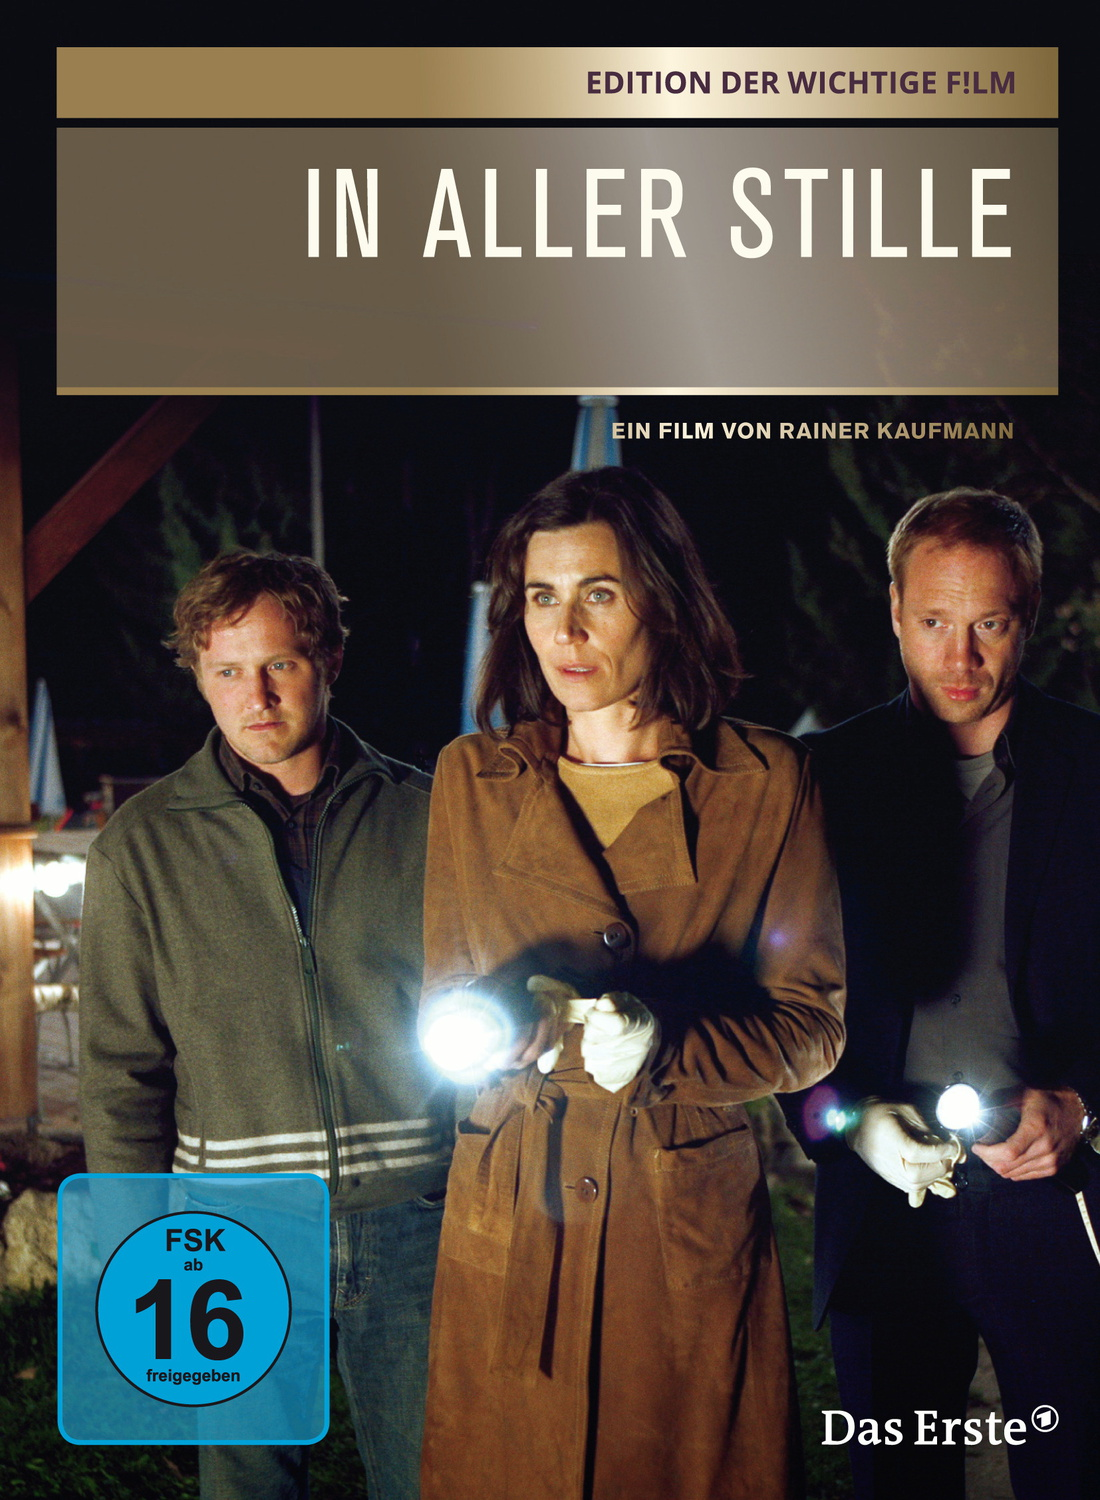 In aller Stille [Der wichtige Film]